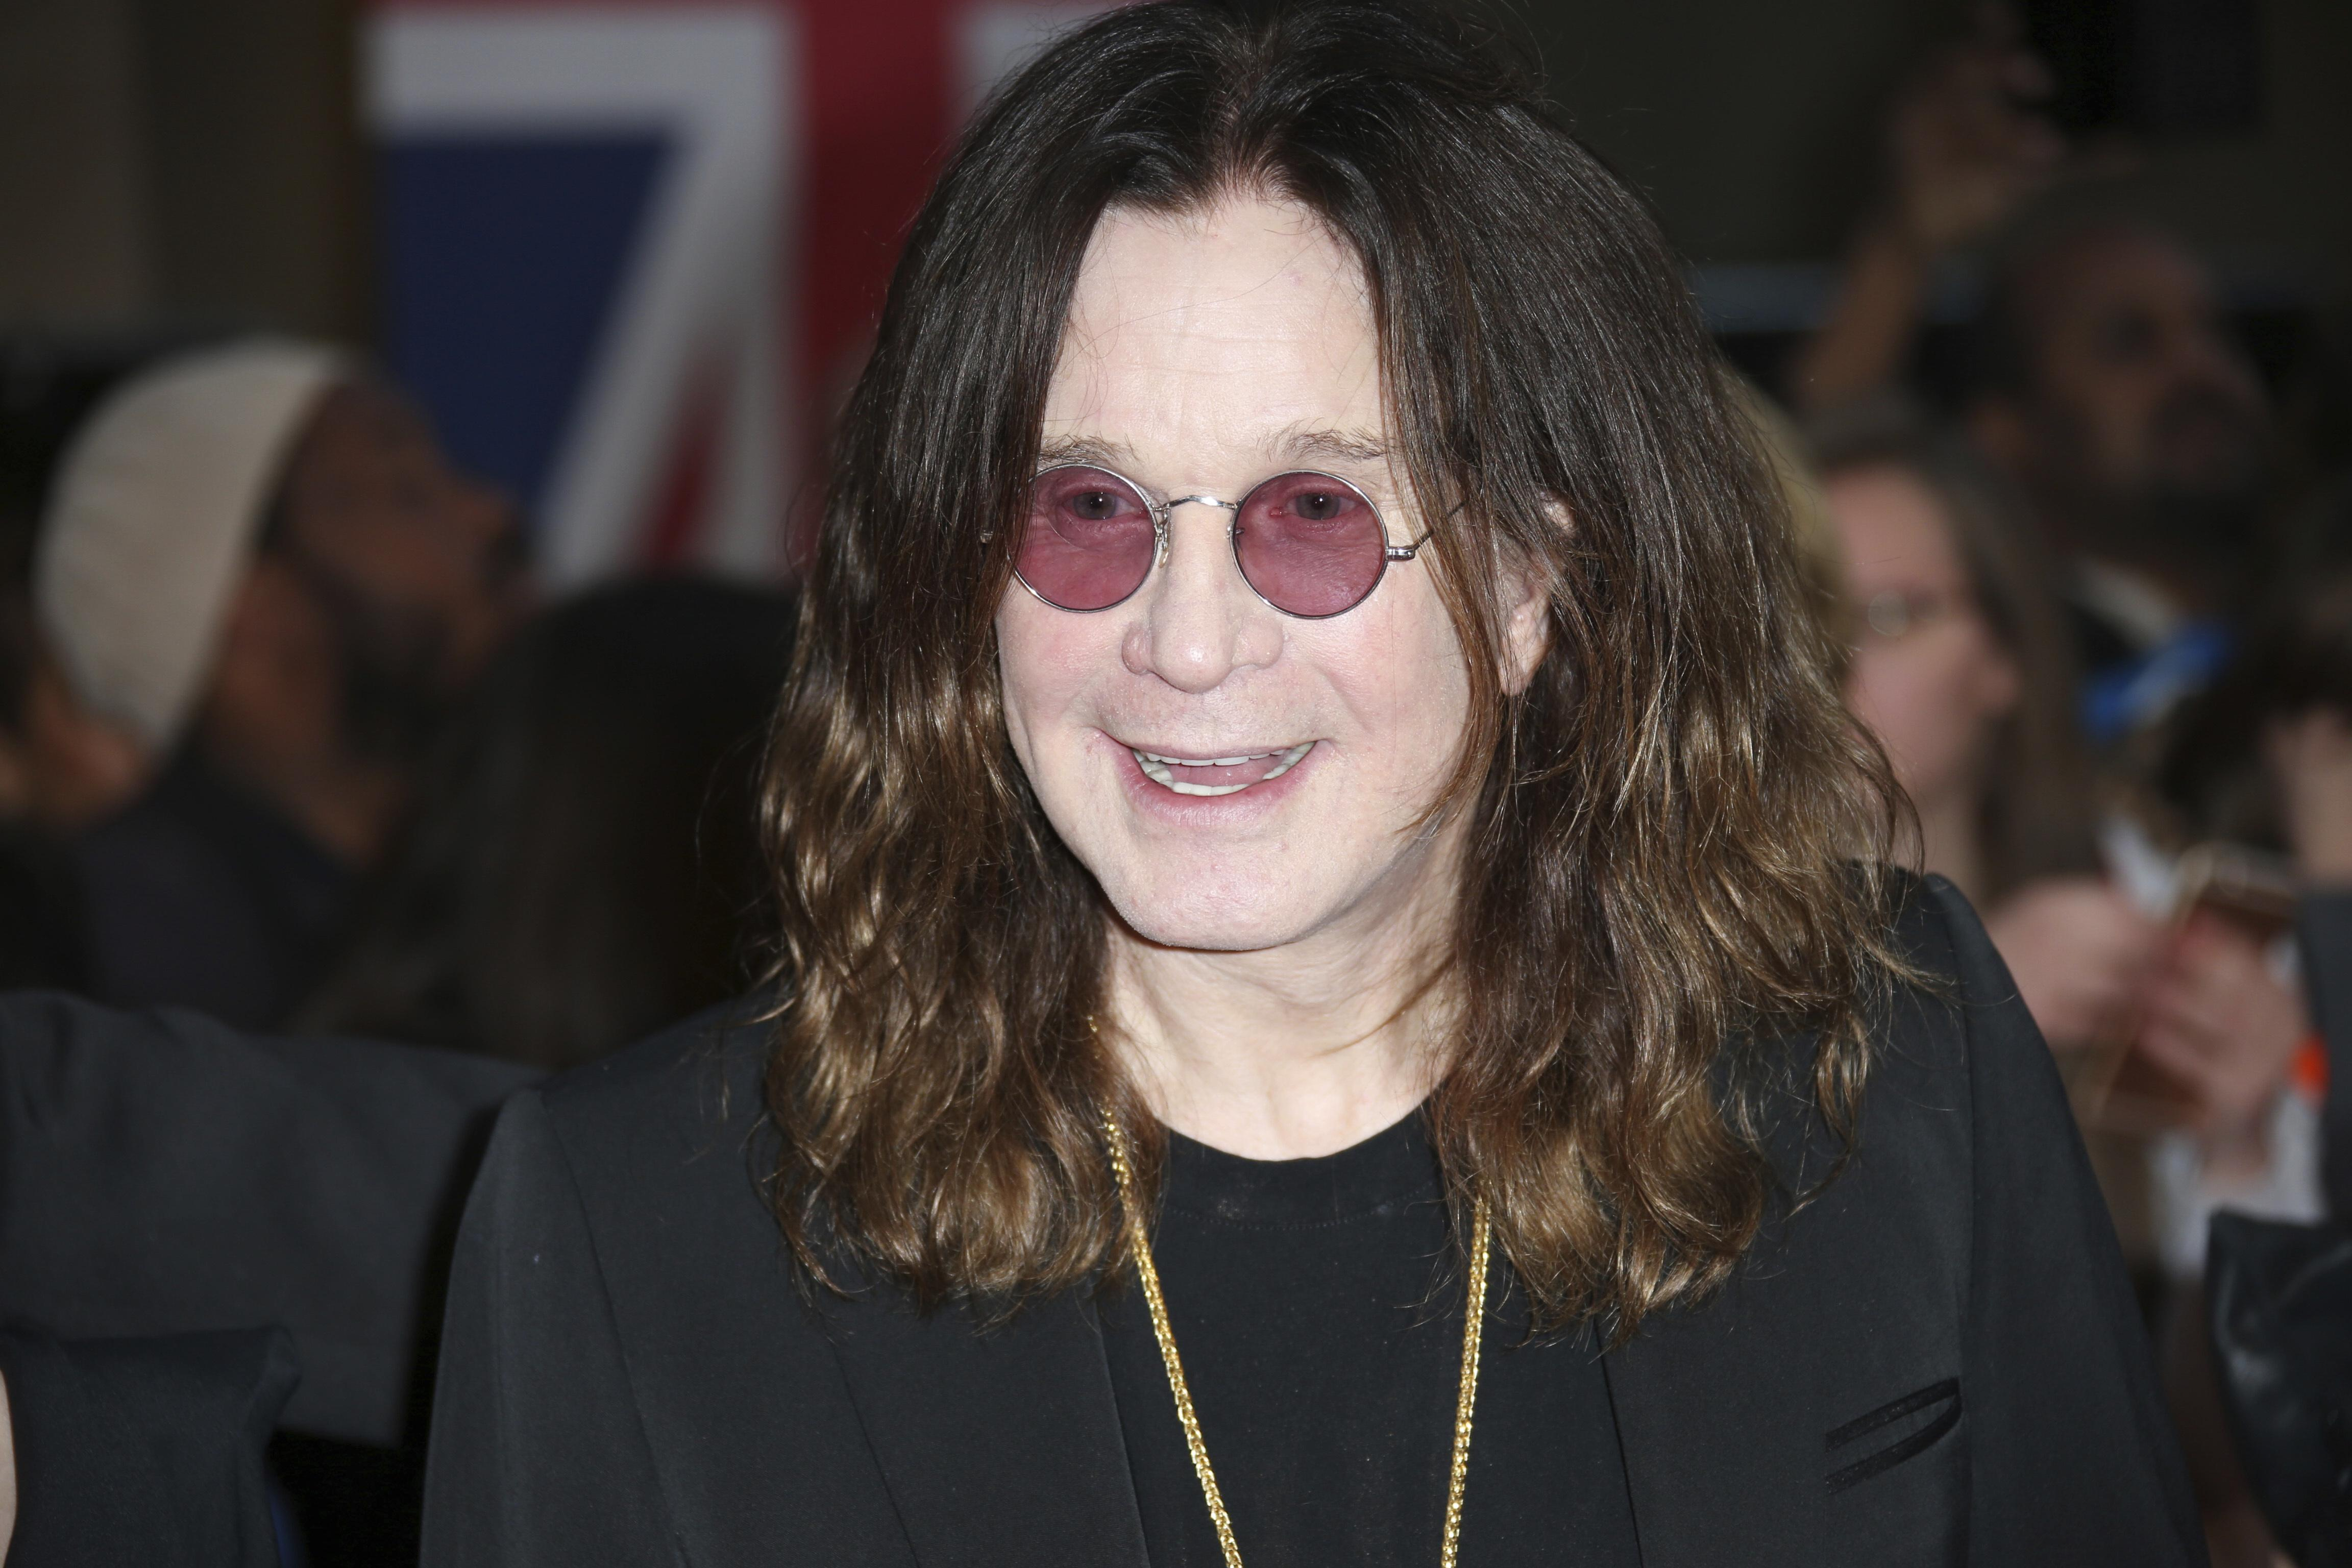 Ozzy Osbourne recovering slowly from injury that postponed world tour